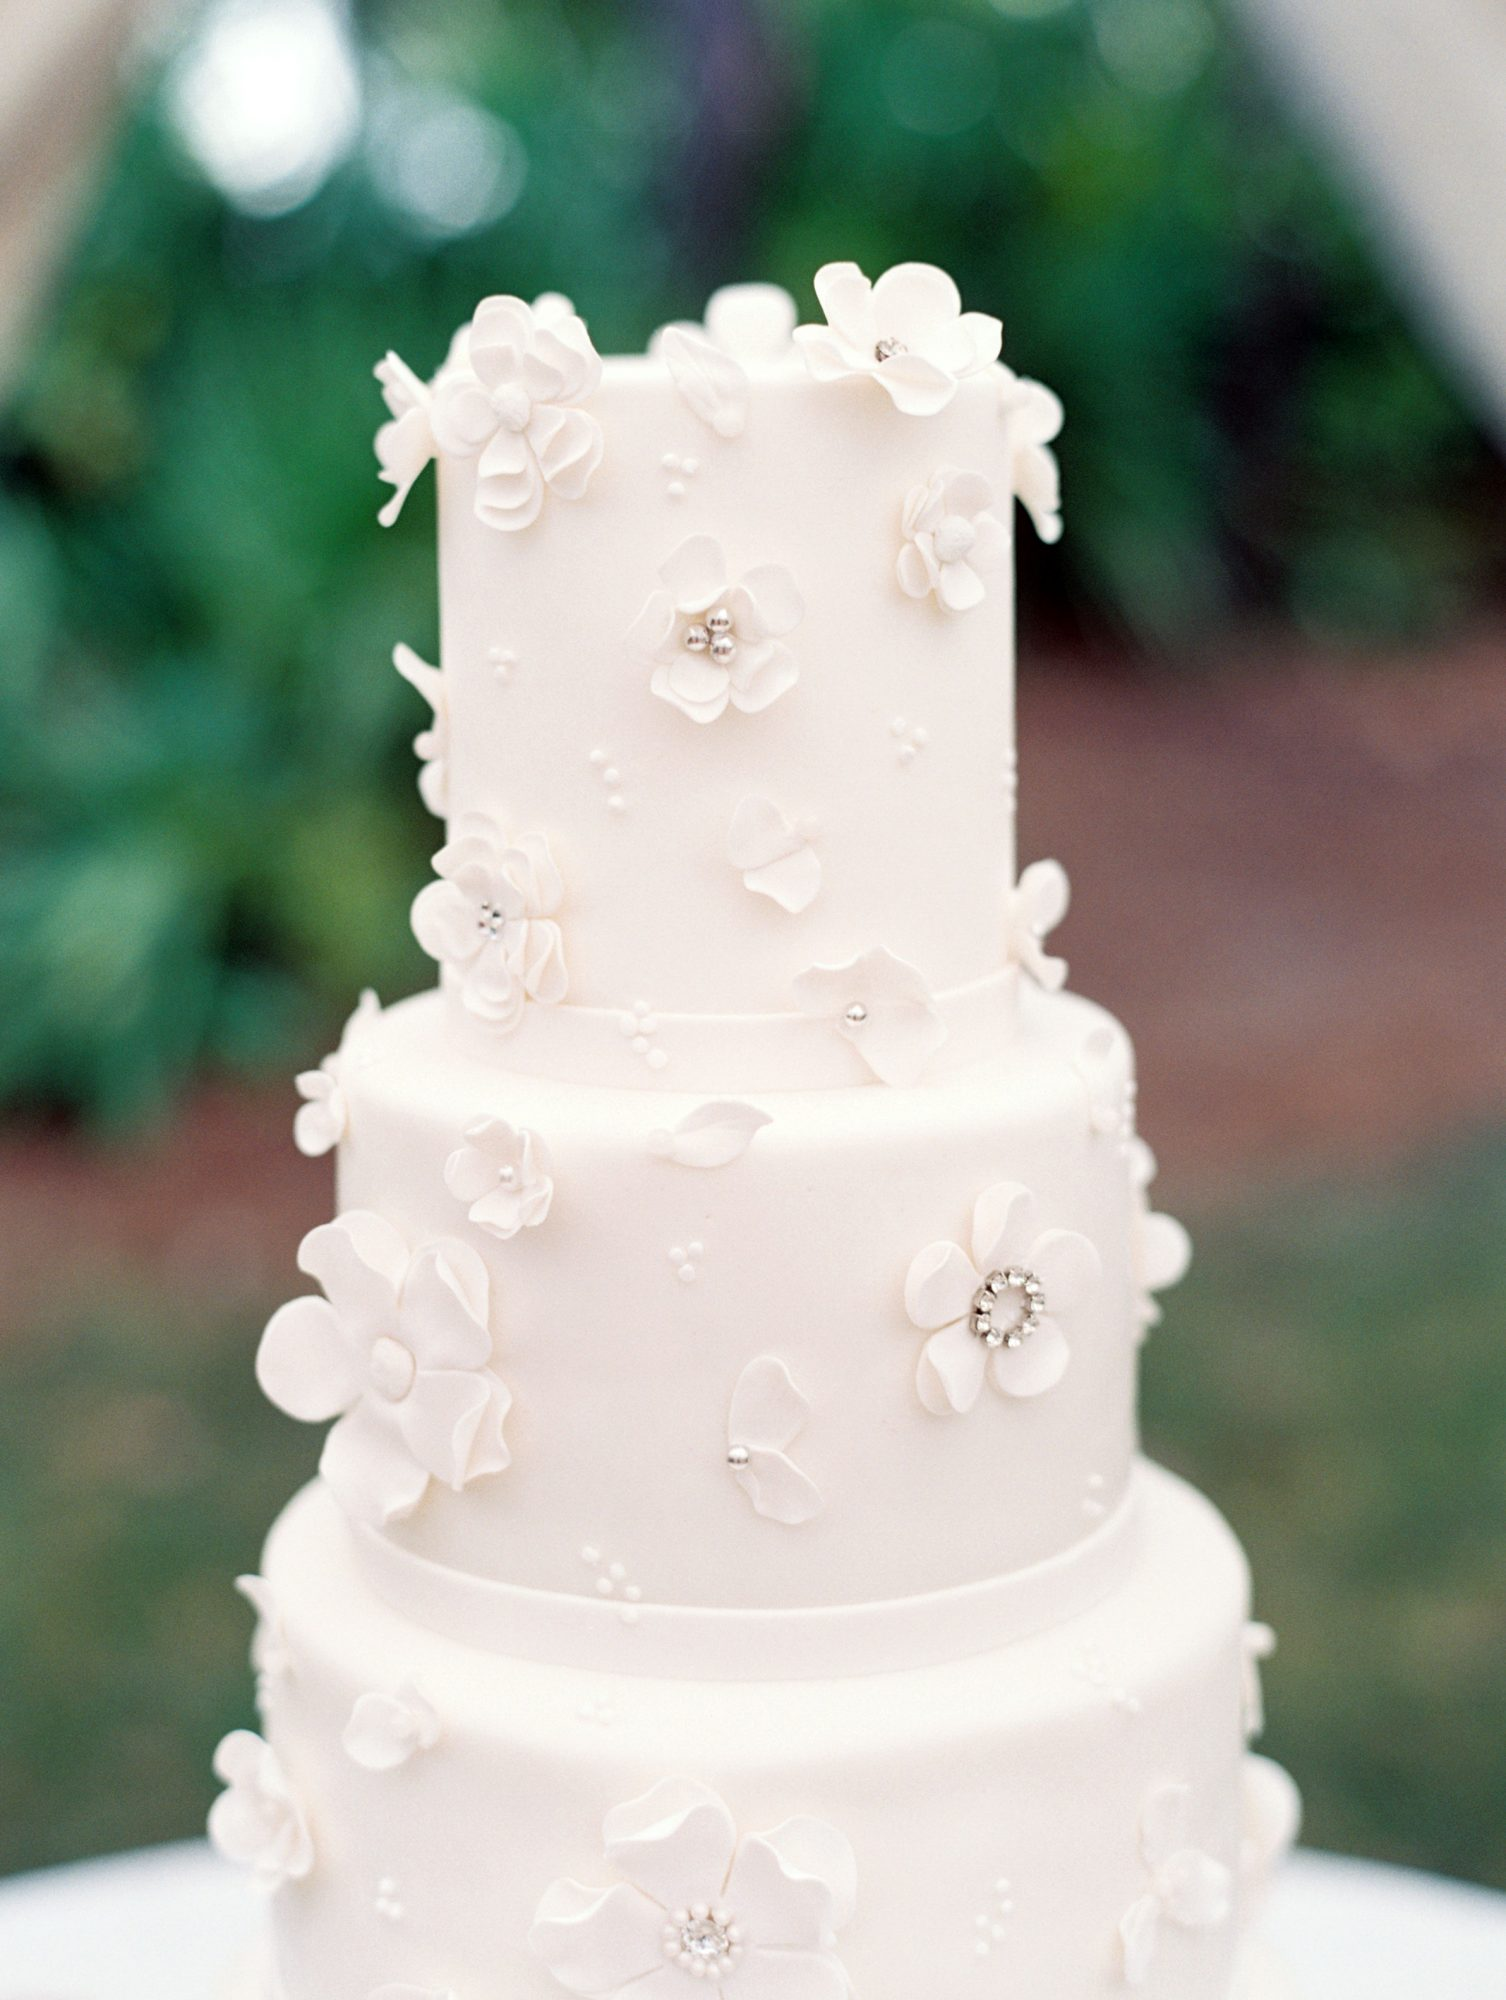 leighton craig wedding white cake with flowers